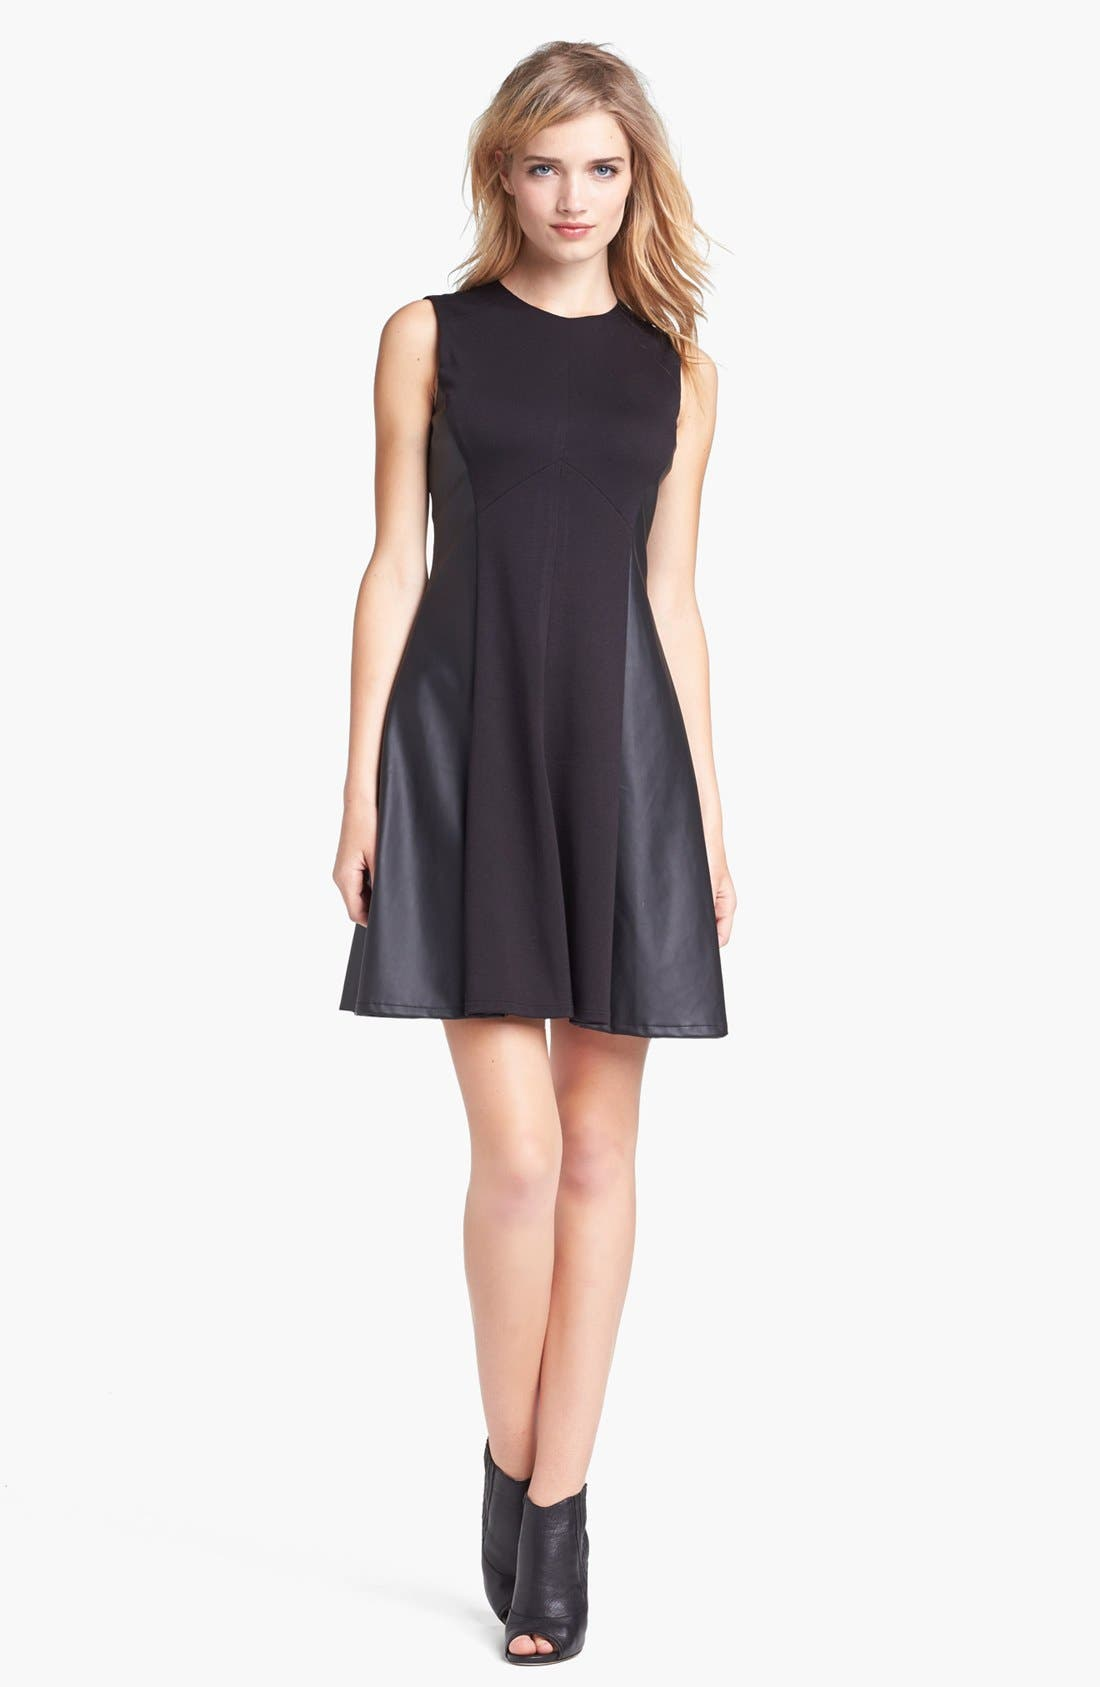 Main Image - Vince Camuto Faux Leather Panel Fit & Flare Dress